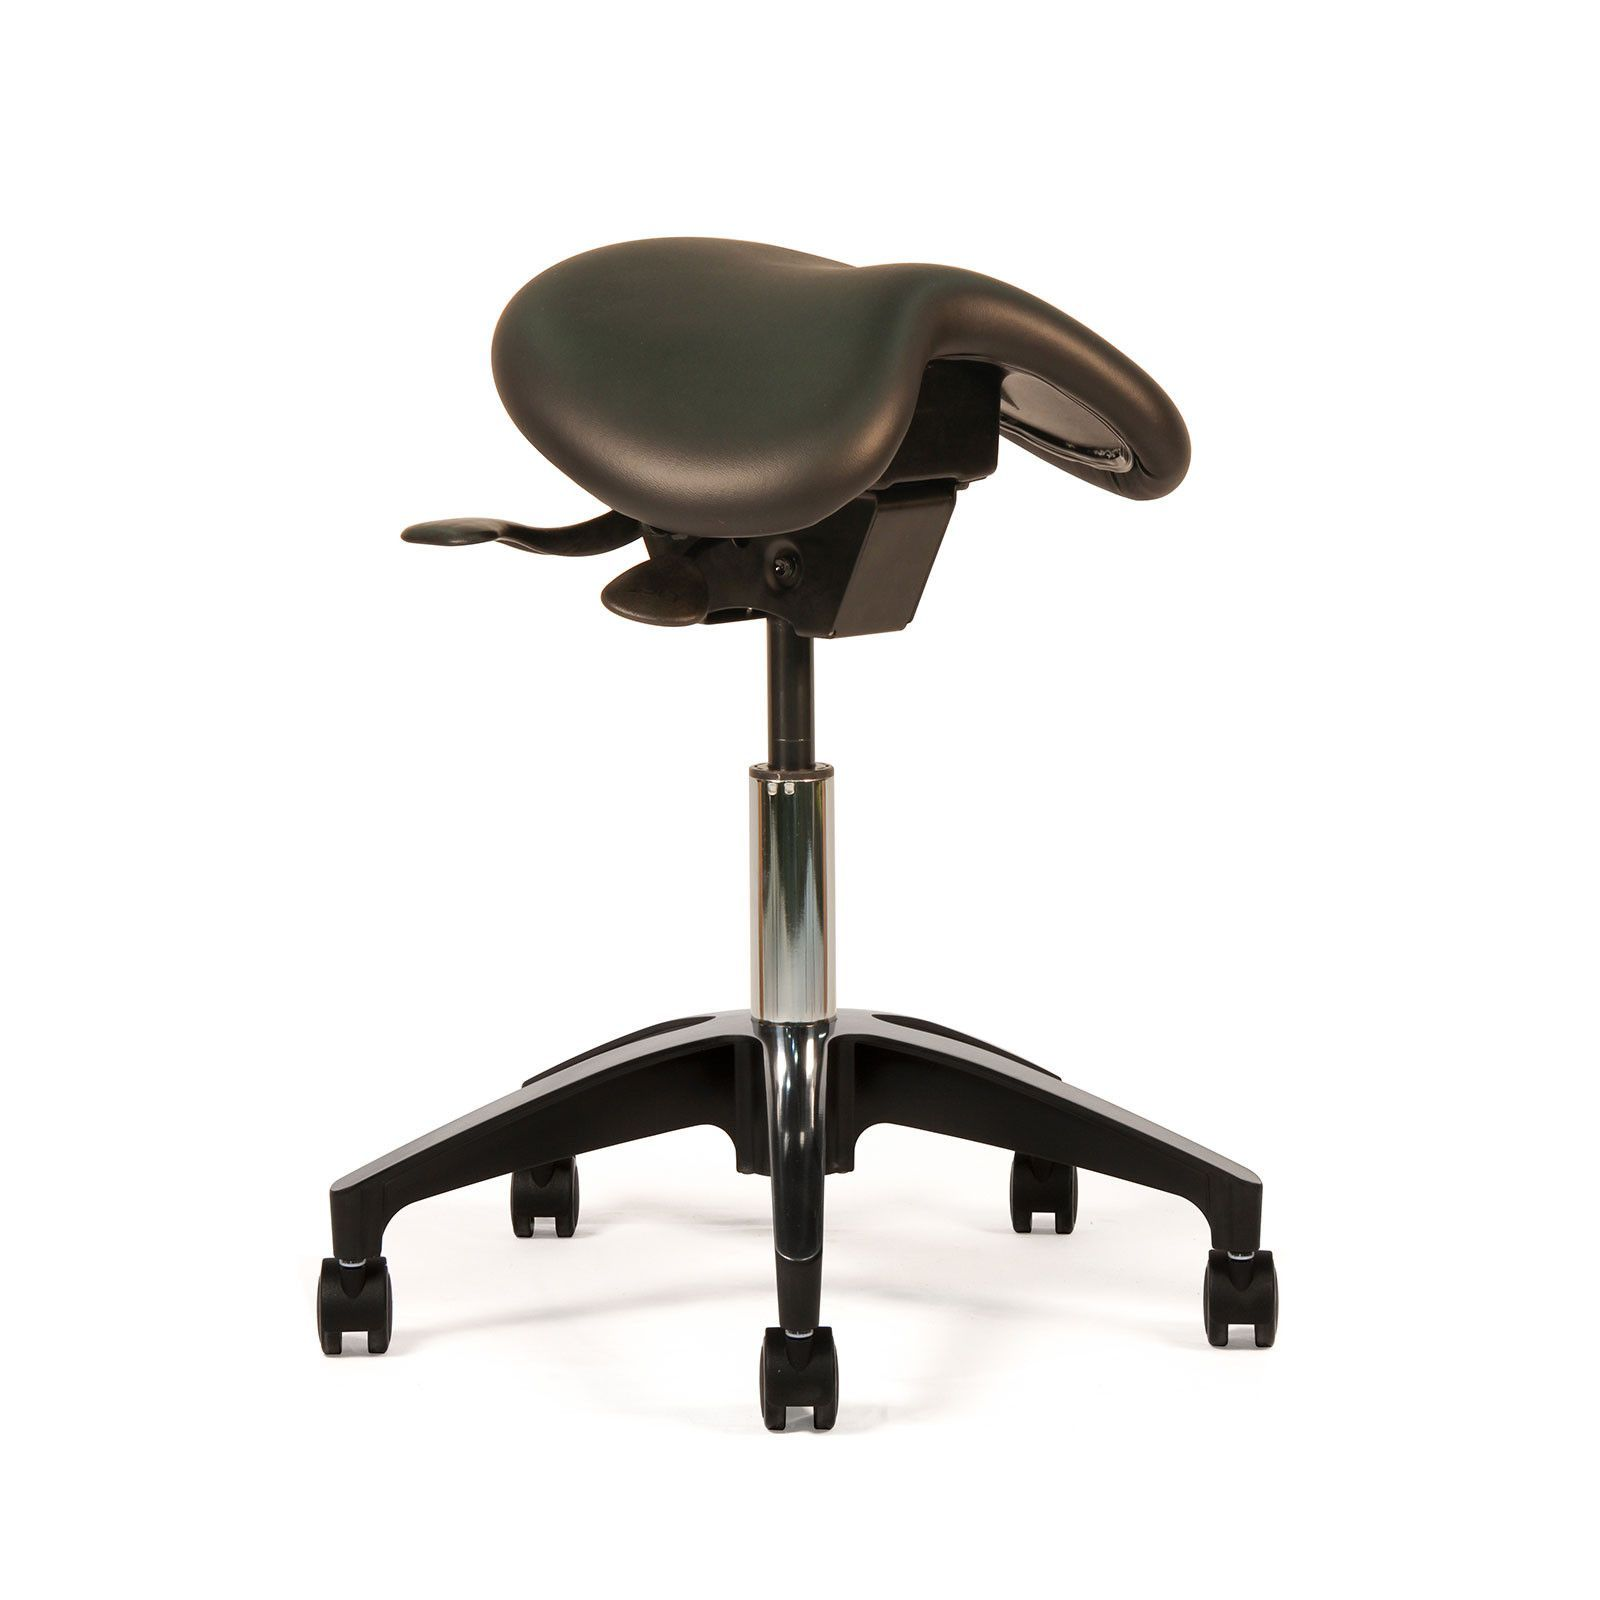 Crown Seating English Saddle Ergonomic Saddle Medical Chair